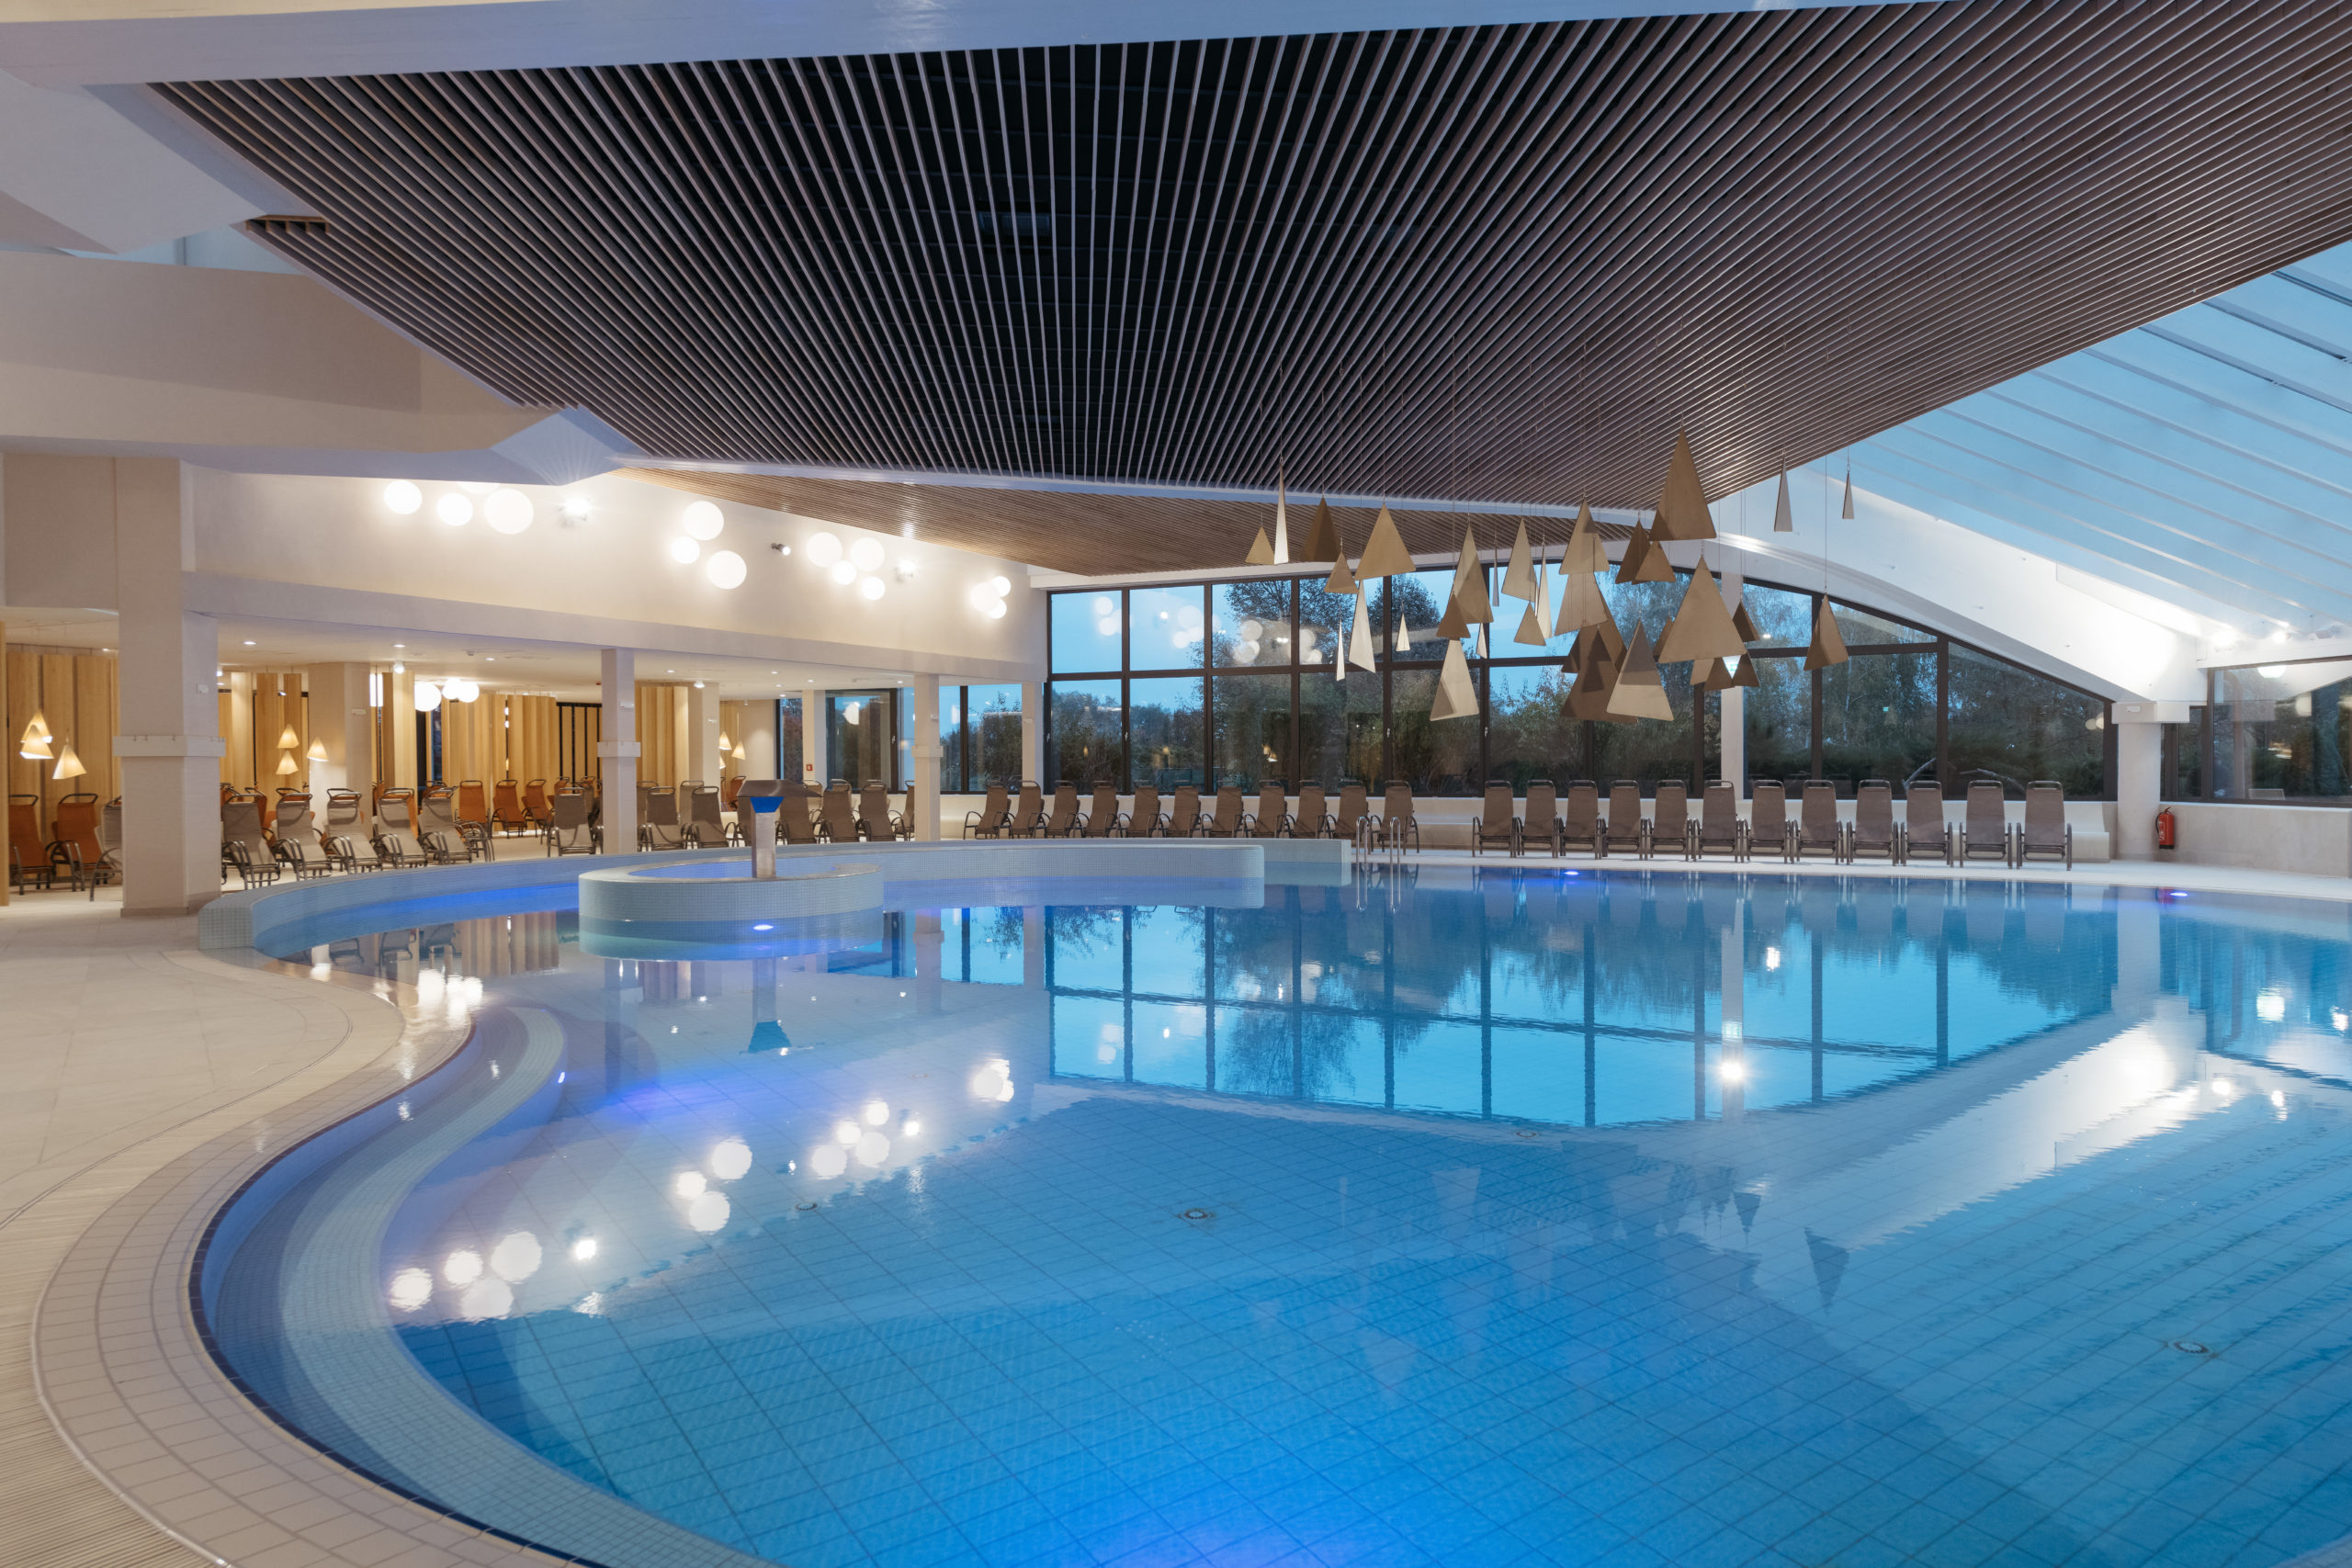 Hotel_Ajda_08_new_indoor_pool_102018_SK